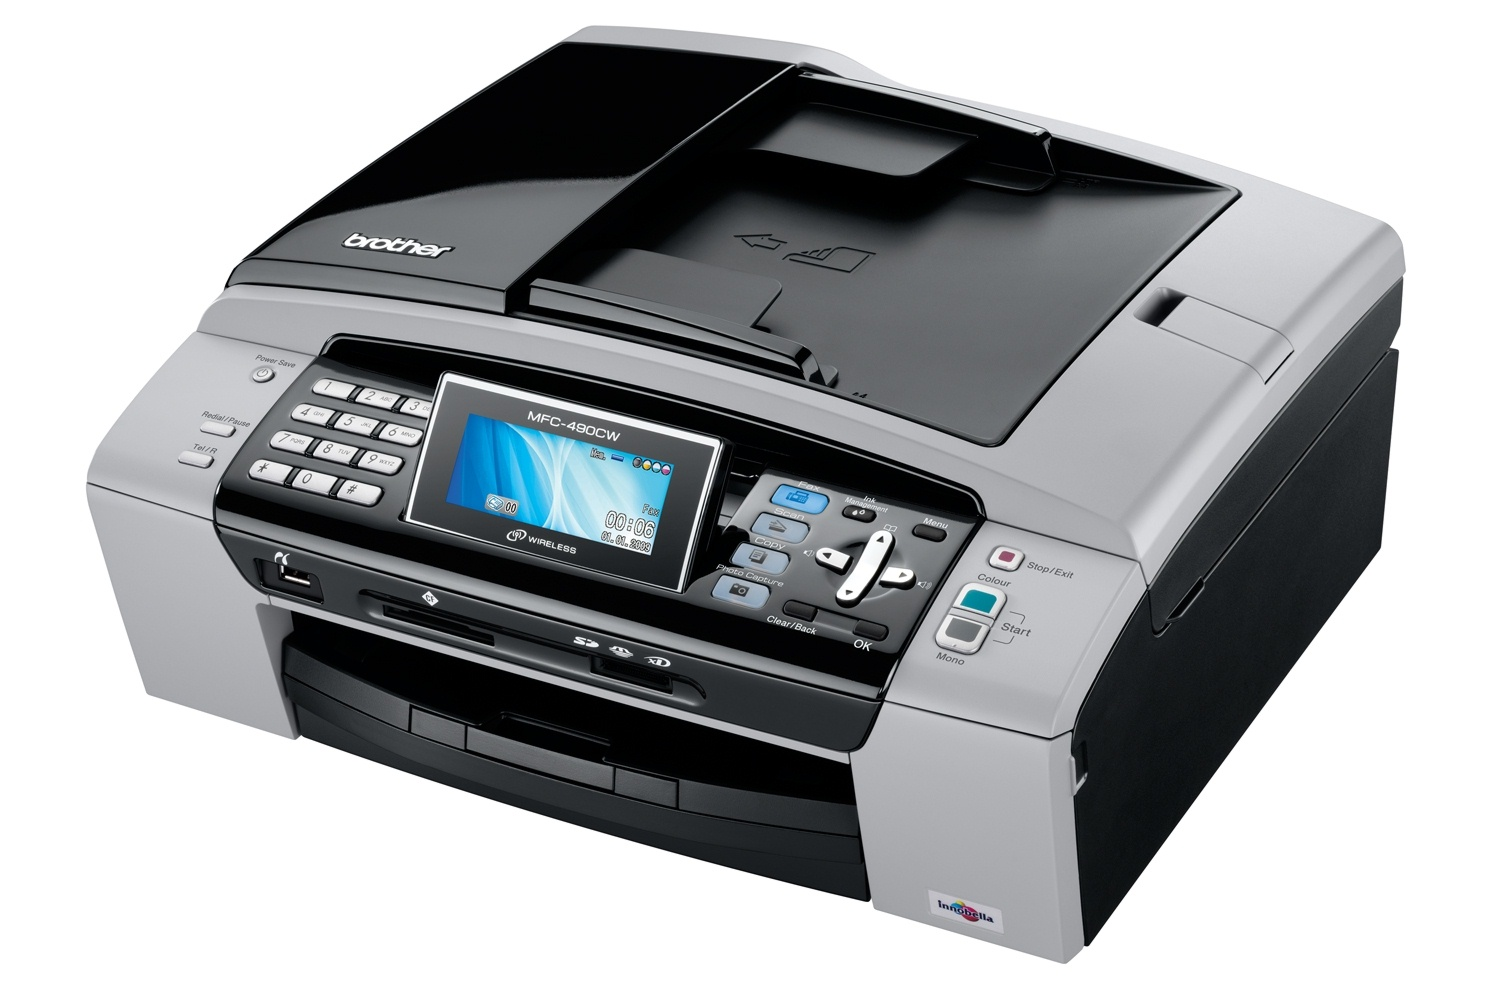 Brother mfc-490cw drivers download update brother software.